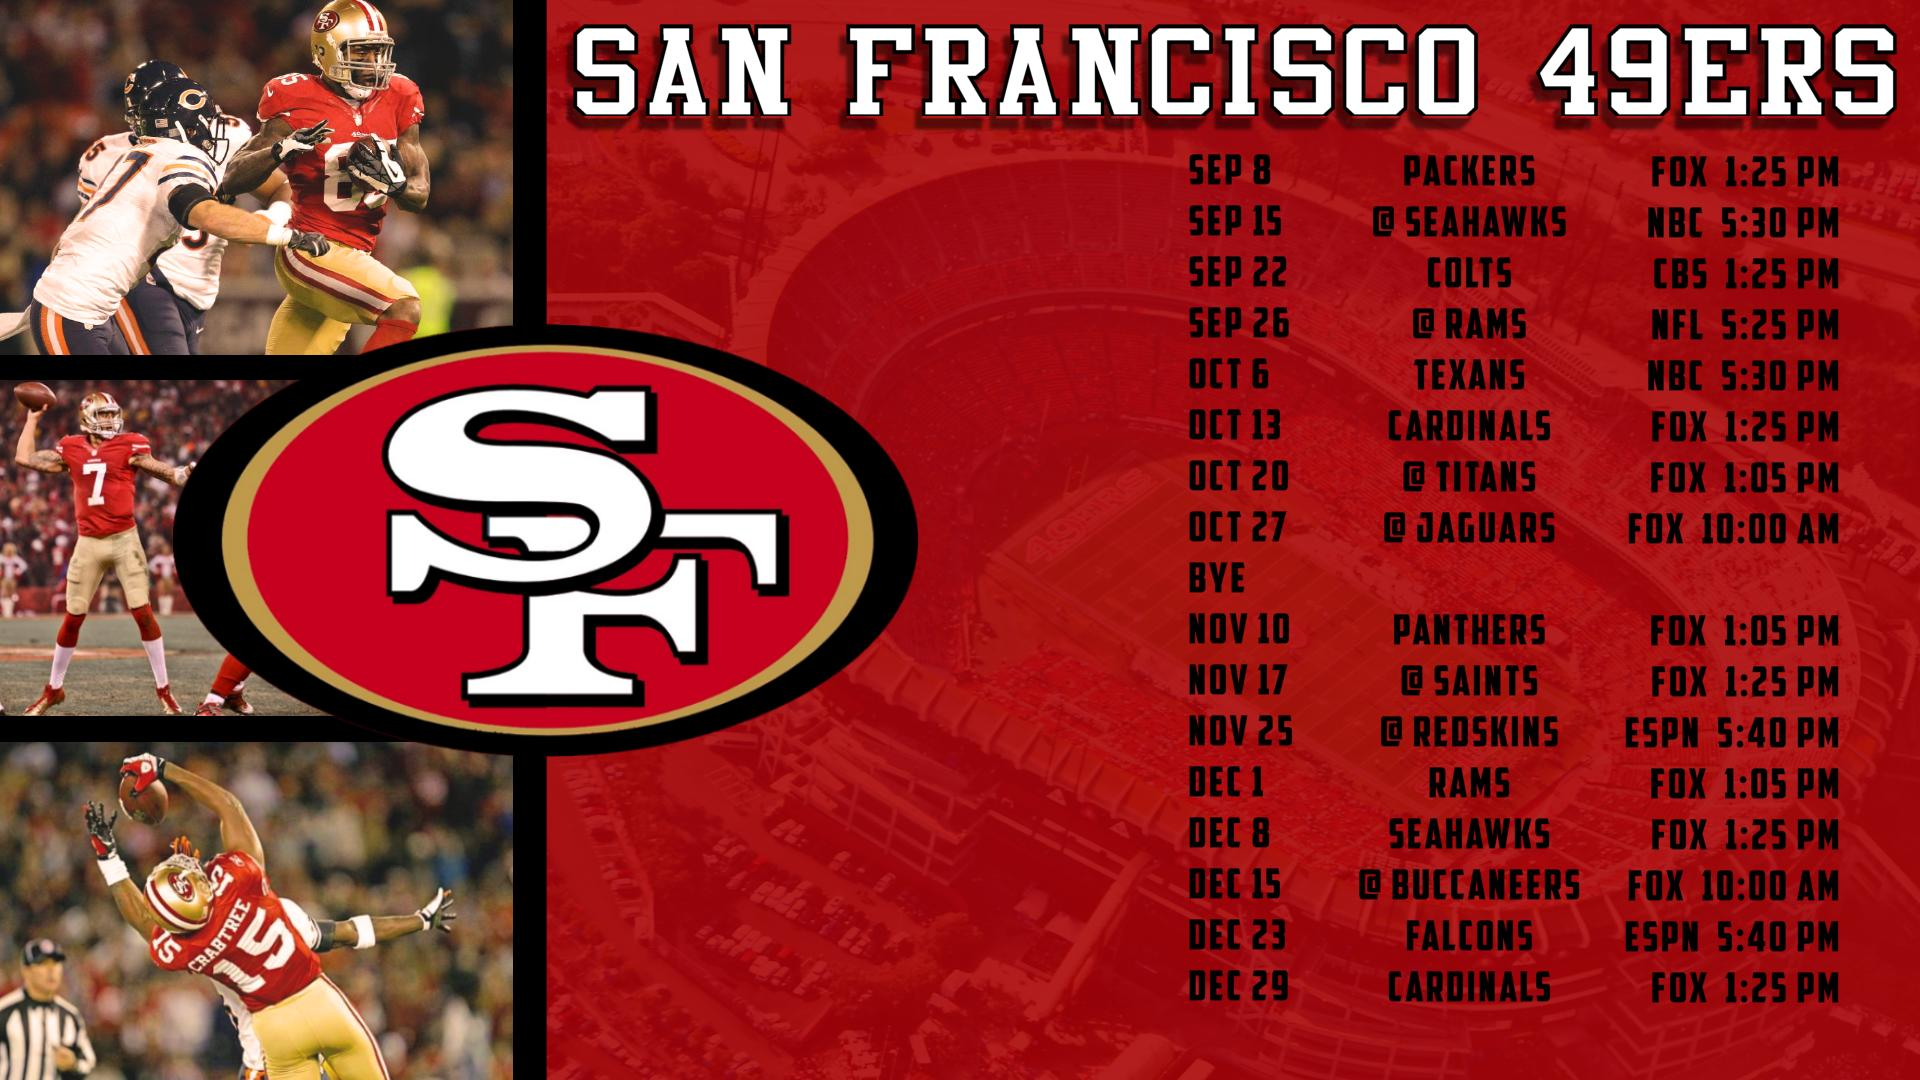 49ers schedule 2015 wallpaper wallpapersafari 49ers wallpaper thread page 16 49erswebzonecom forum 1920x1080 voltagebd Choice Image